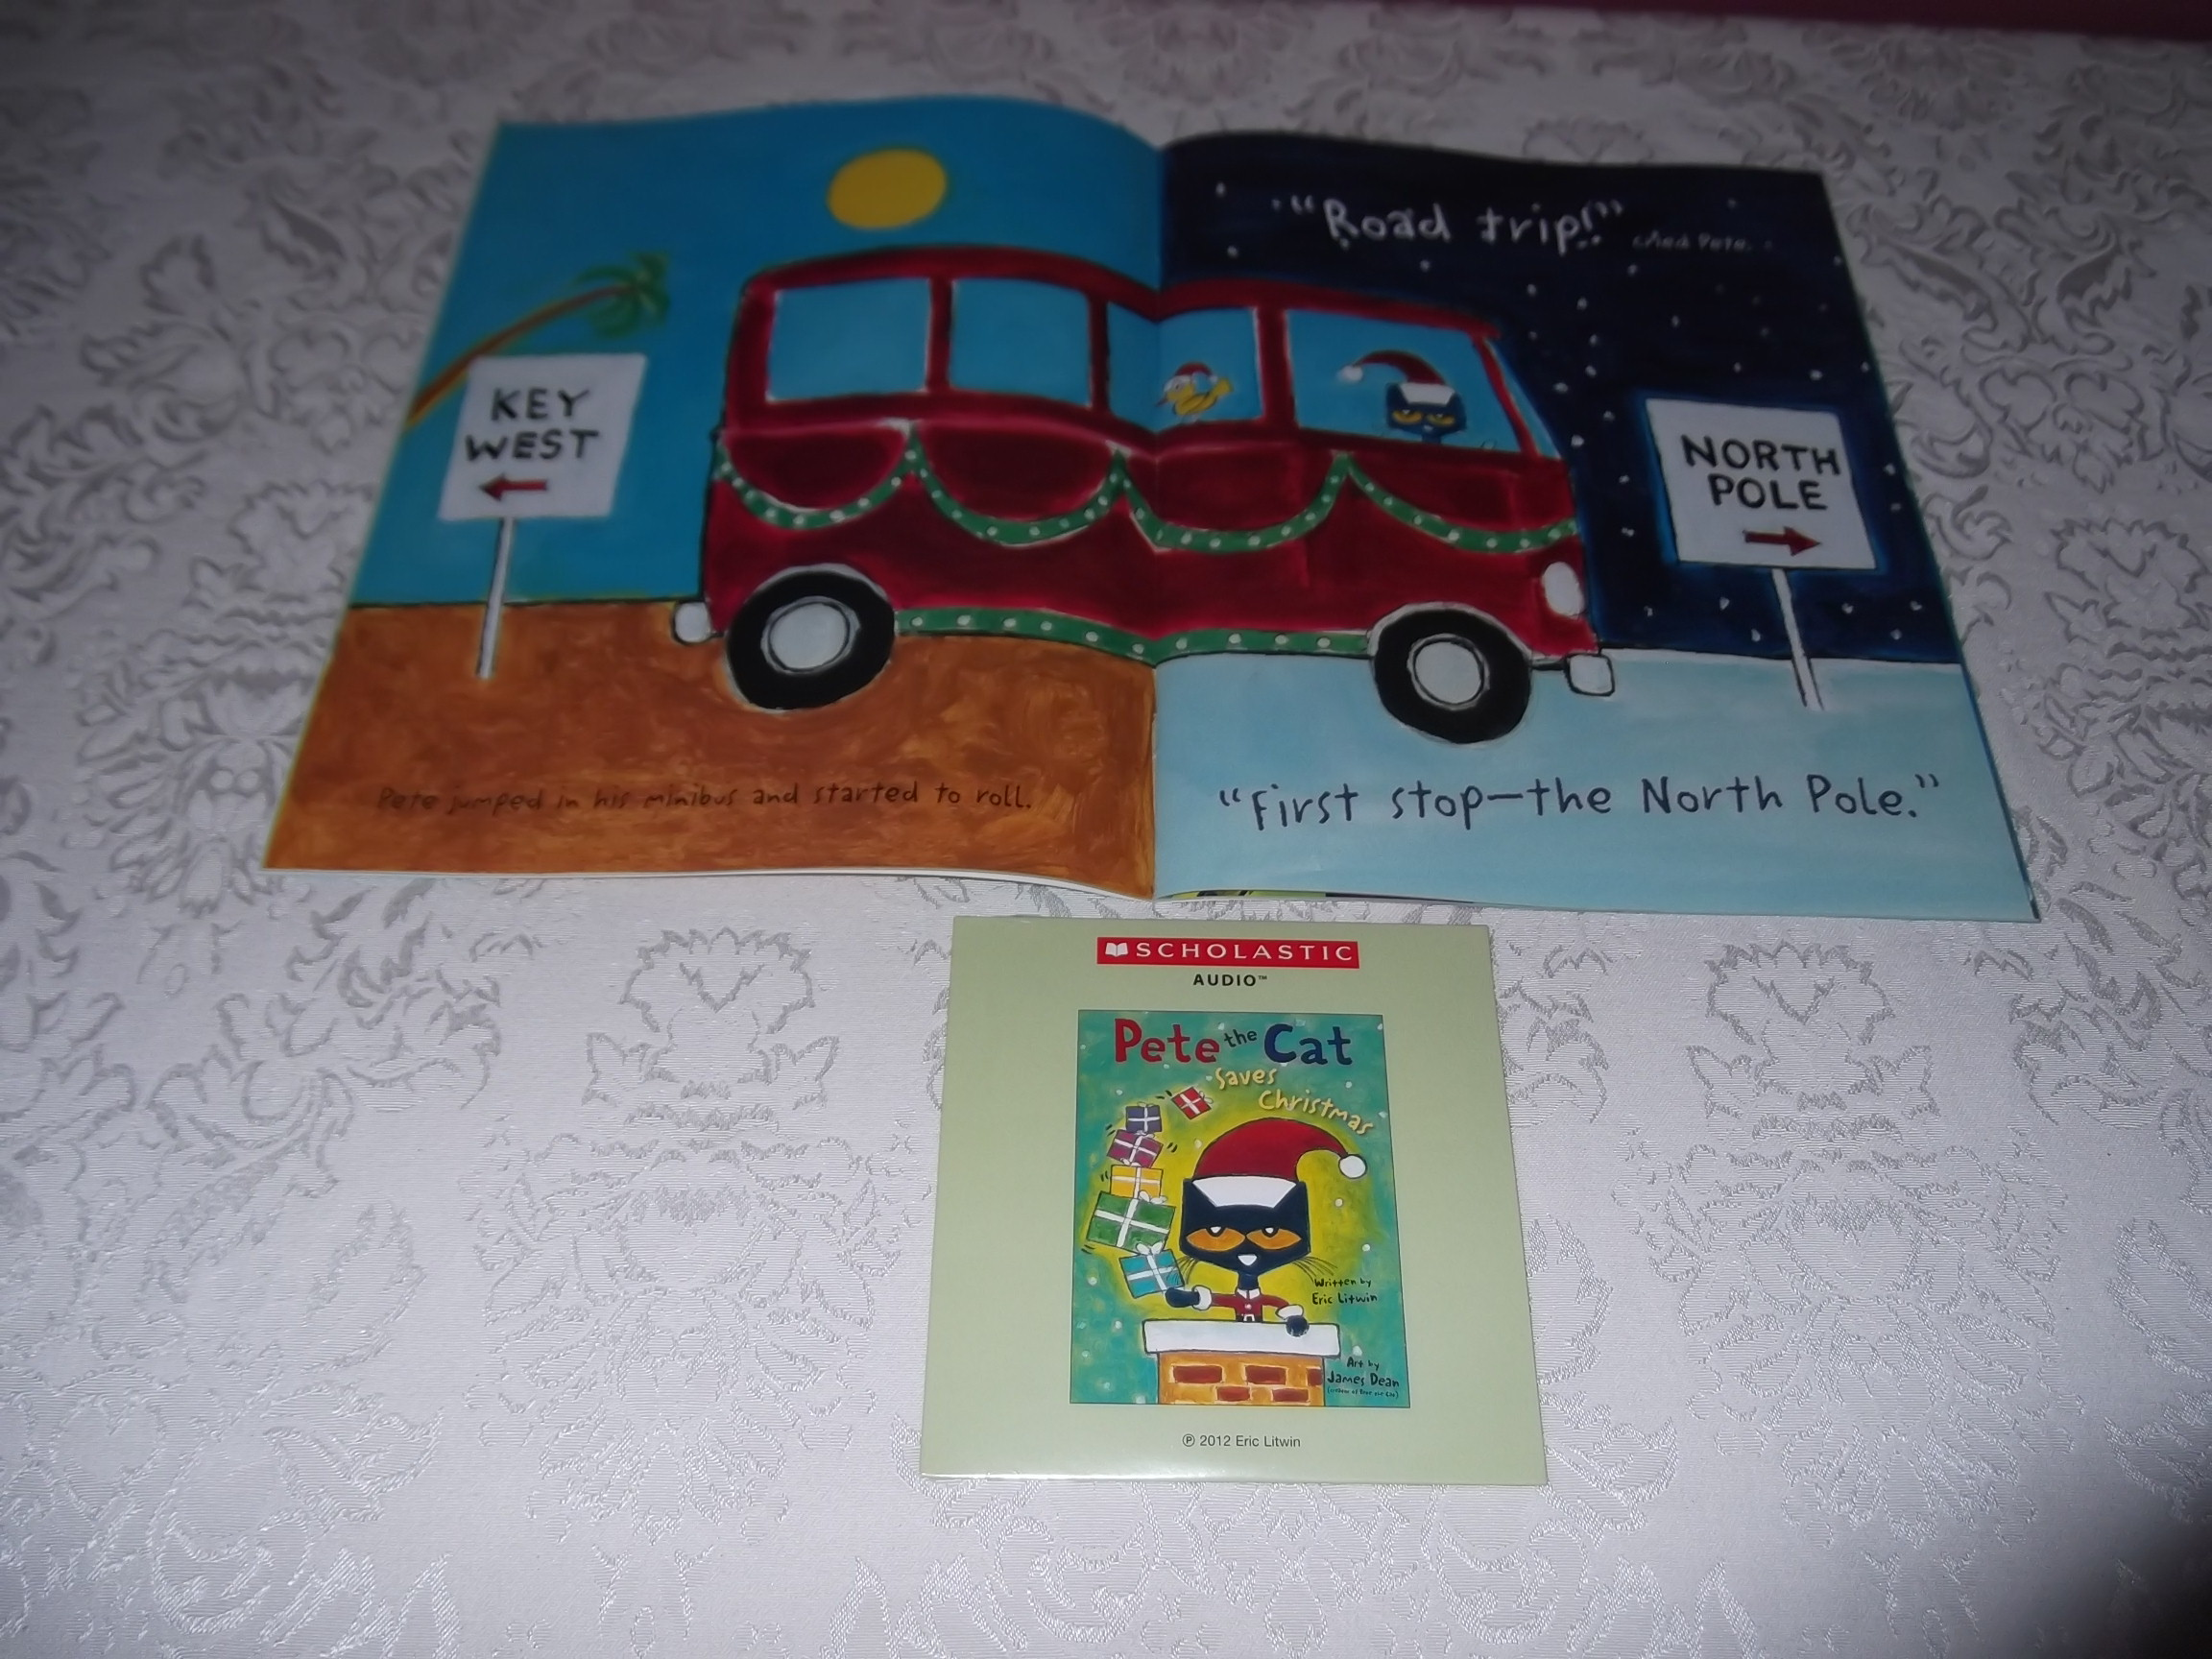 Image 1 of Pete the Cat Saves Christmas Brand New Audio CD and SC Eric Litwin